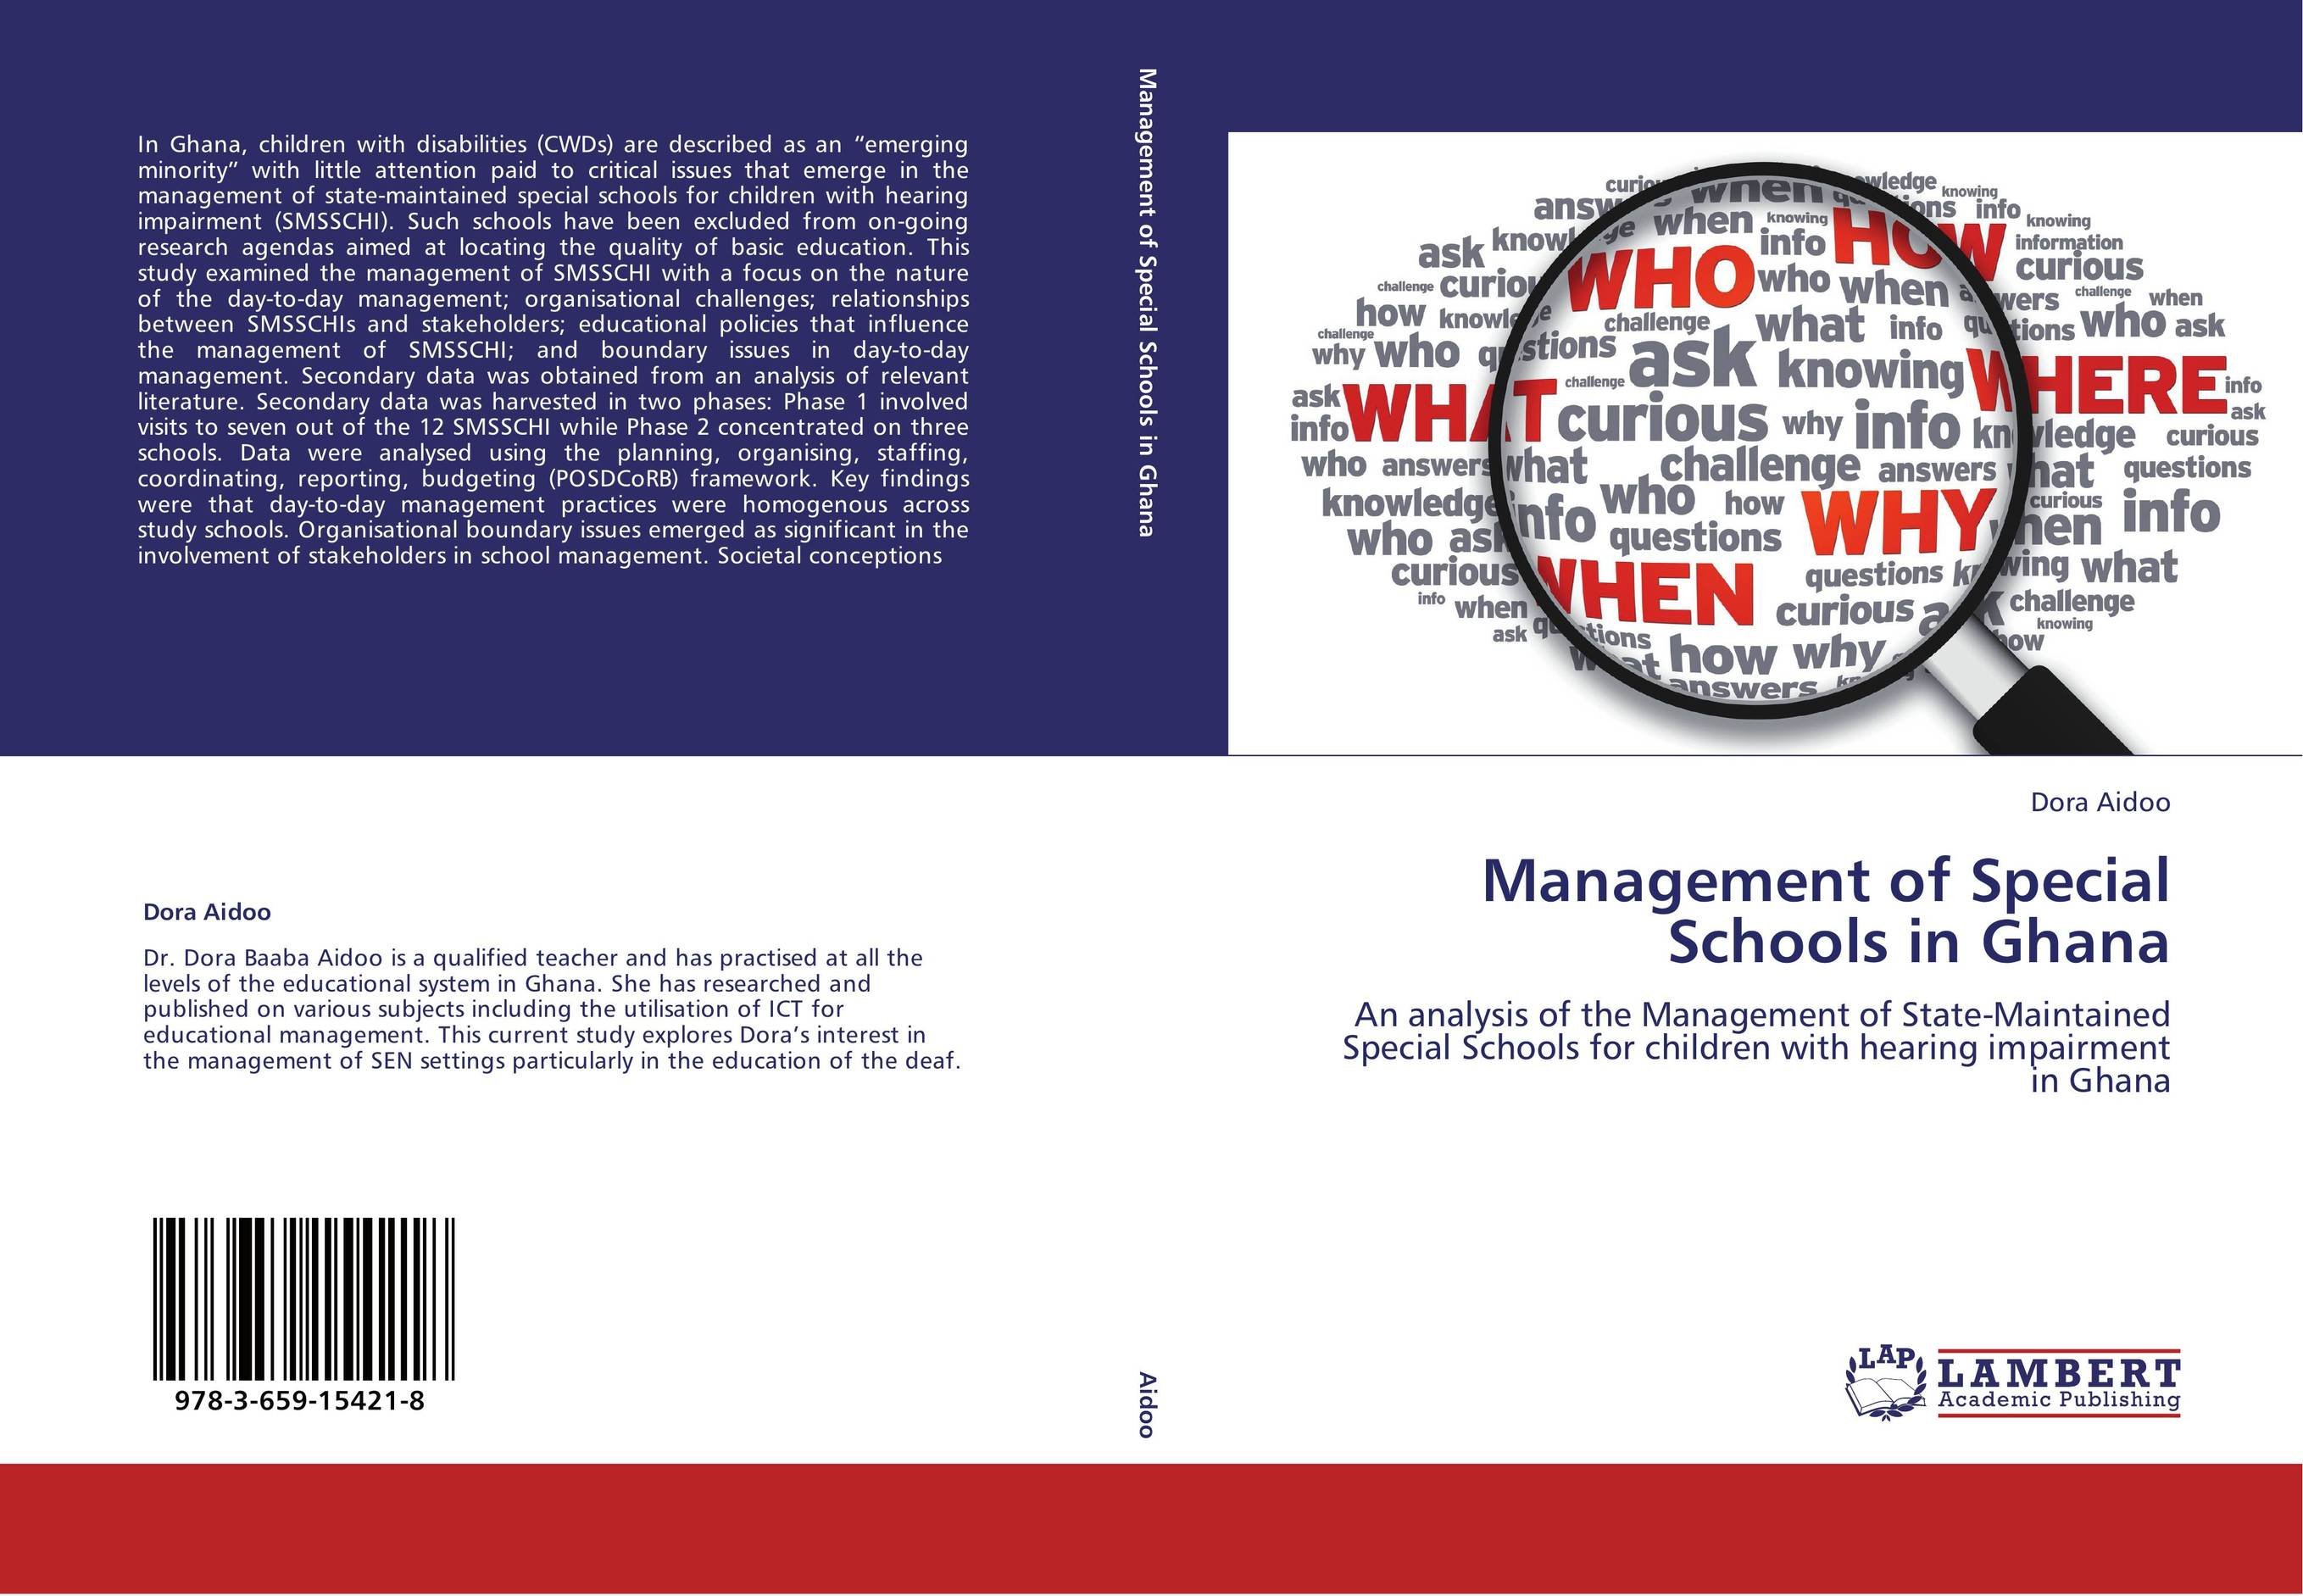 an analysis of schools Unlike other research that focuses primarily on academic outcomes or school finance, wallethub's analysis takes a more comprehensive approach it accounts for performance, funding, safety, class size and instructor credentials.